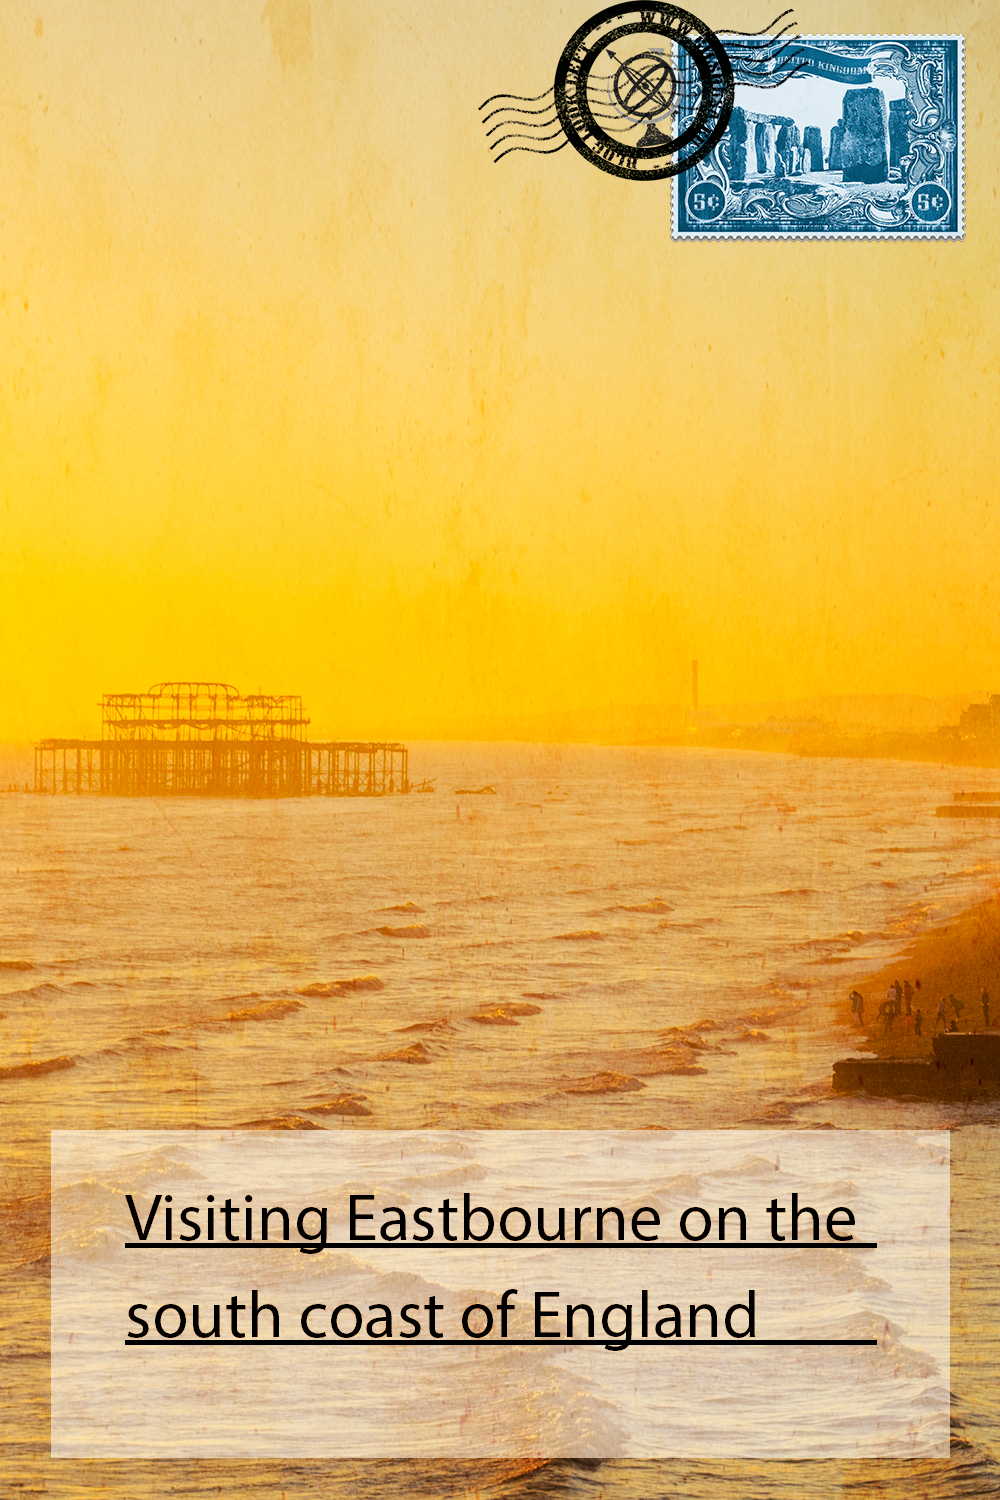 Visiting Eastbourne on the south coast of England